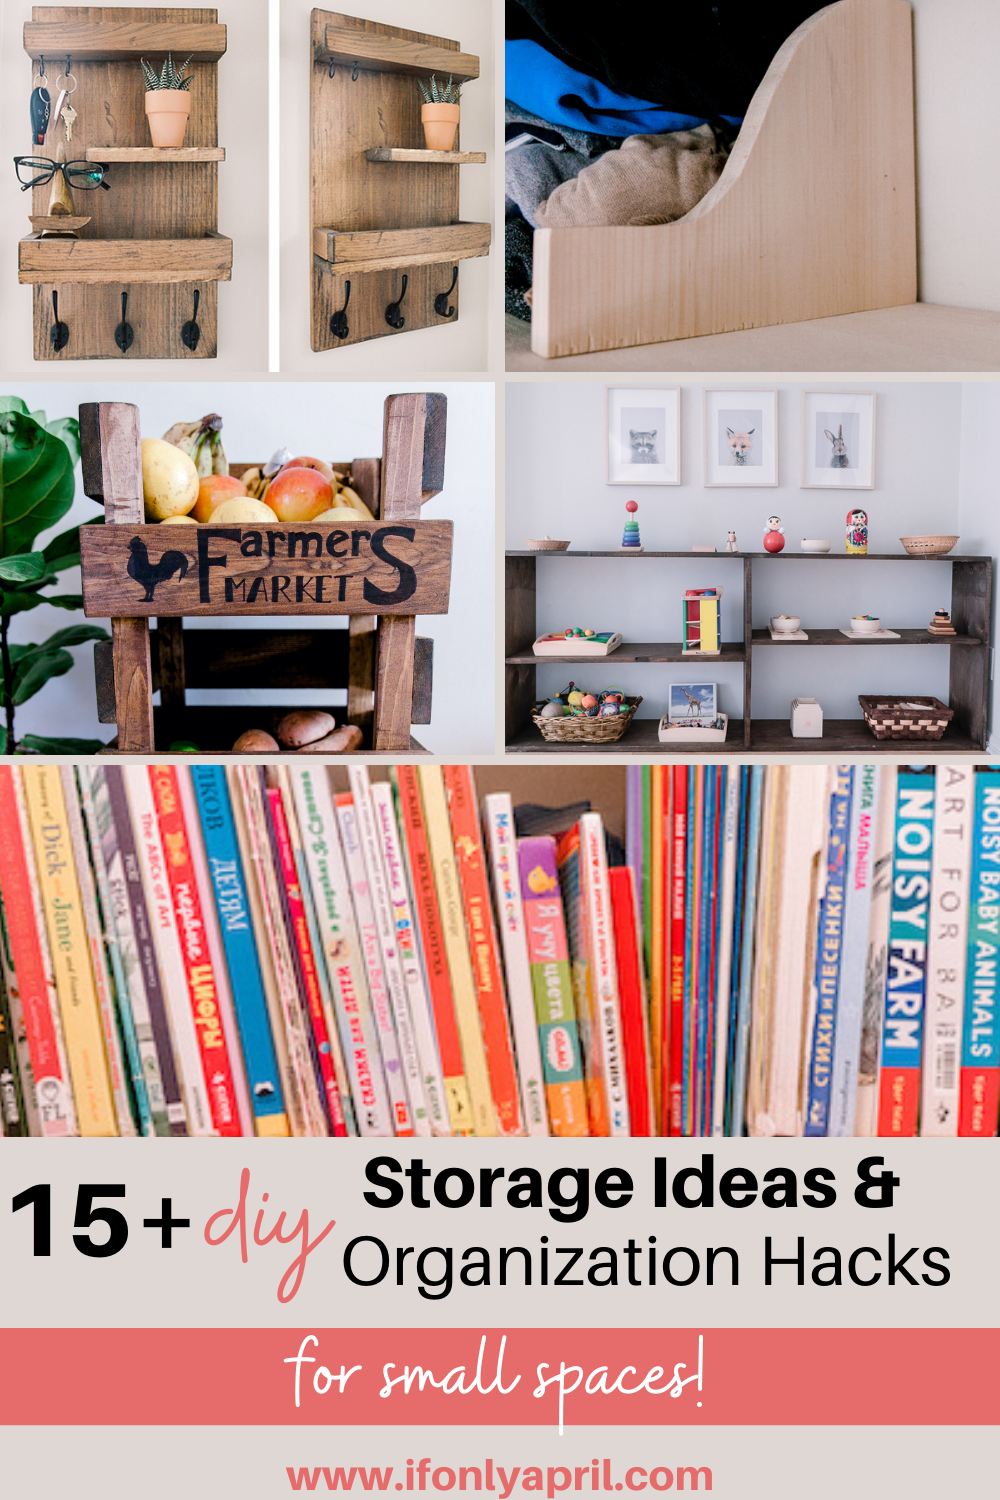 15+ diy storage ideas and organization hacks for small spaces